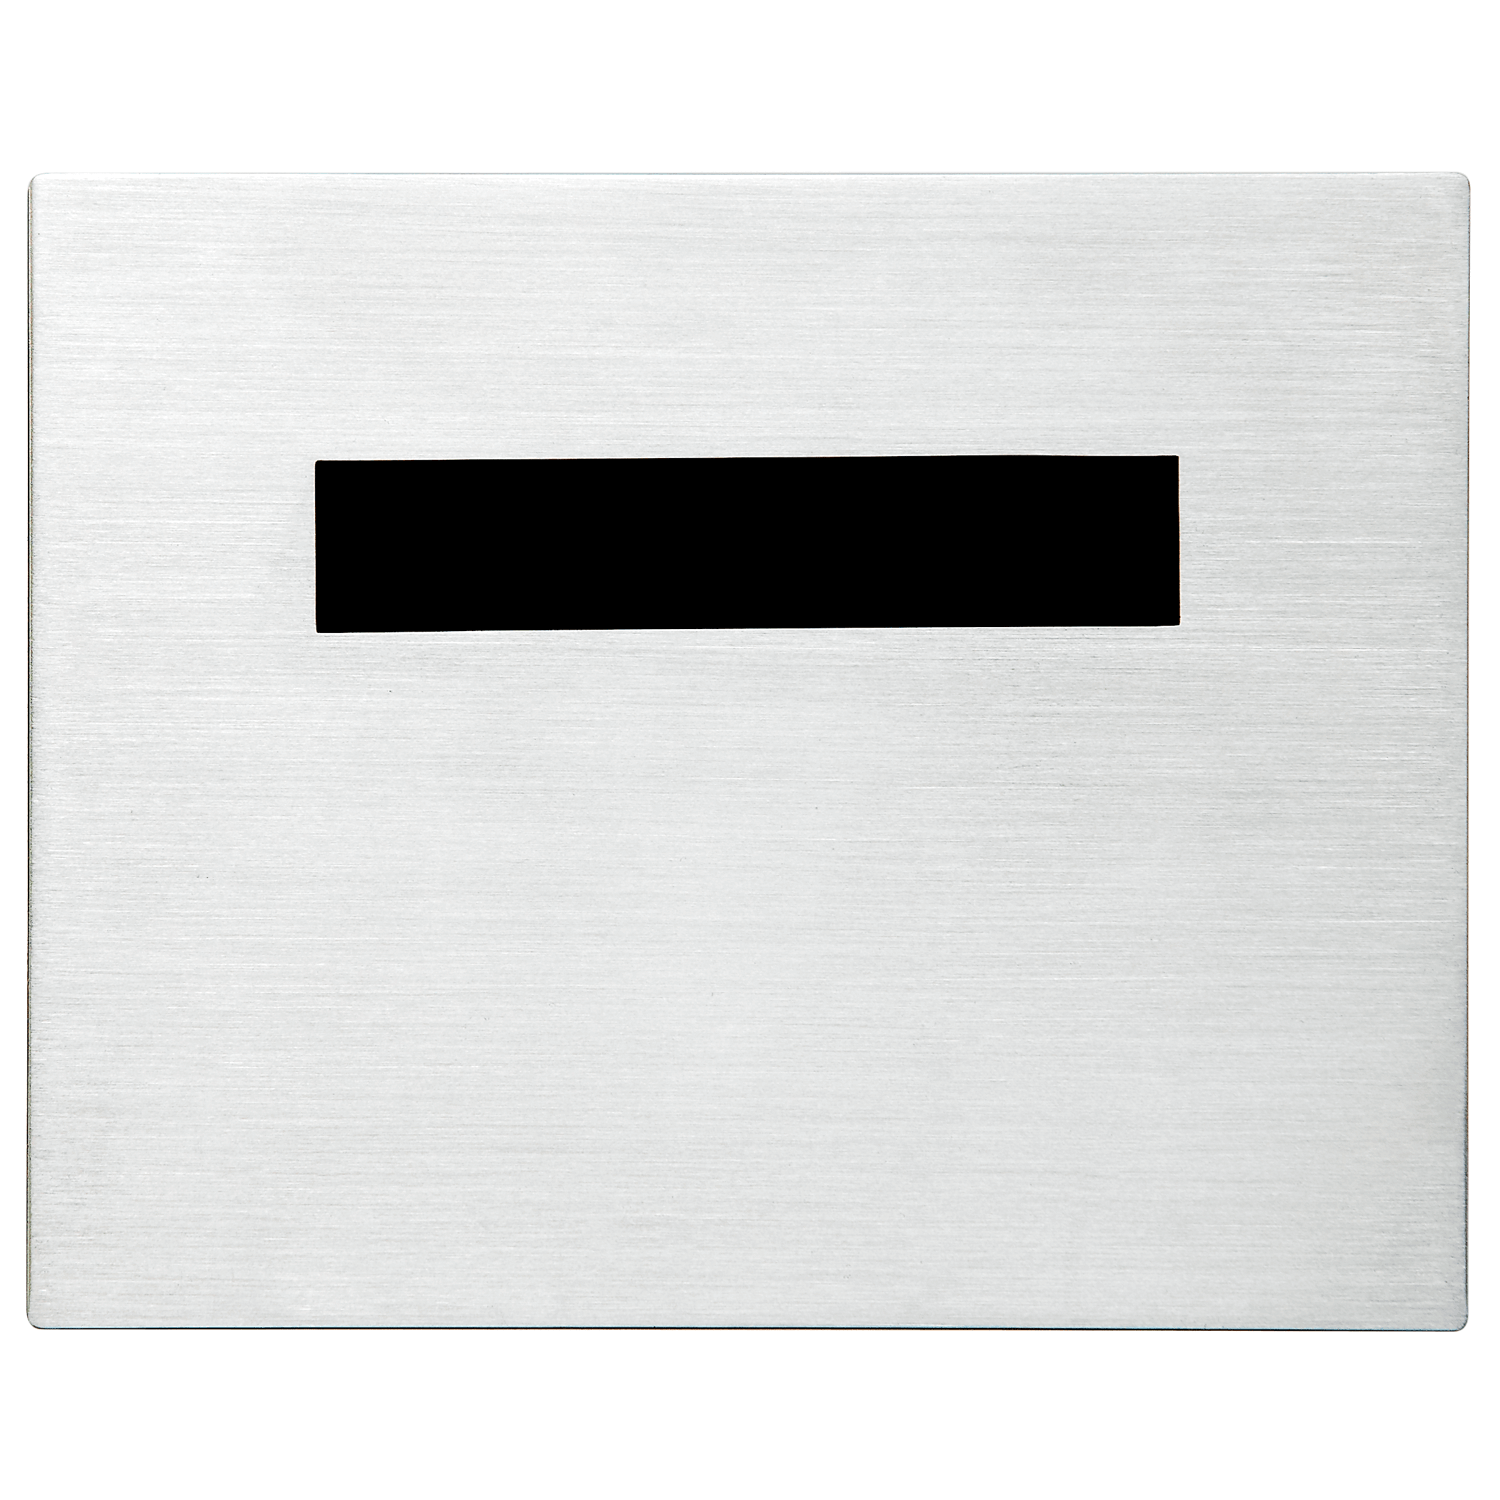 Letter box png. Ned kelly integrated back